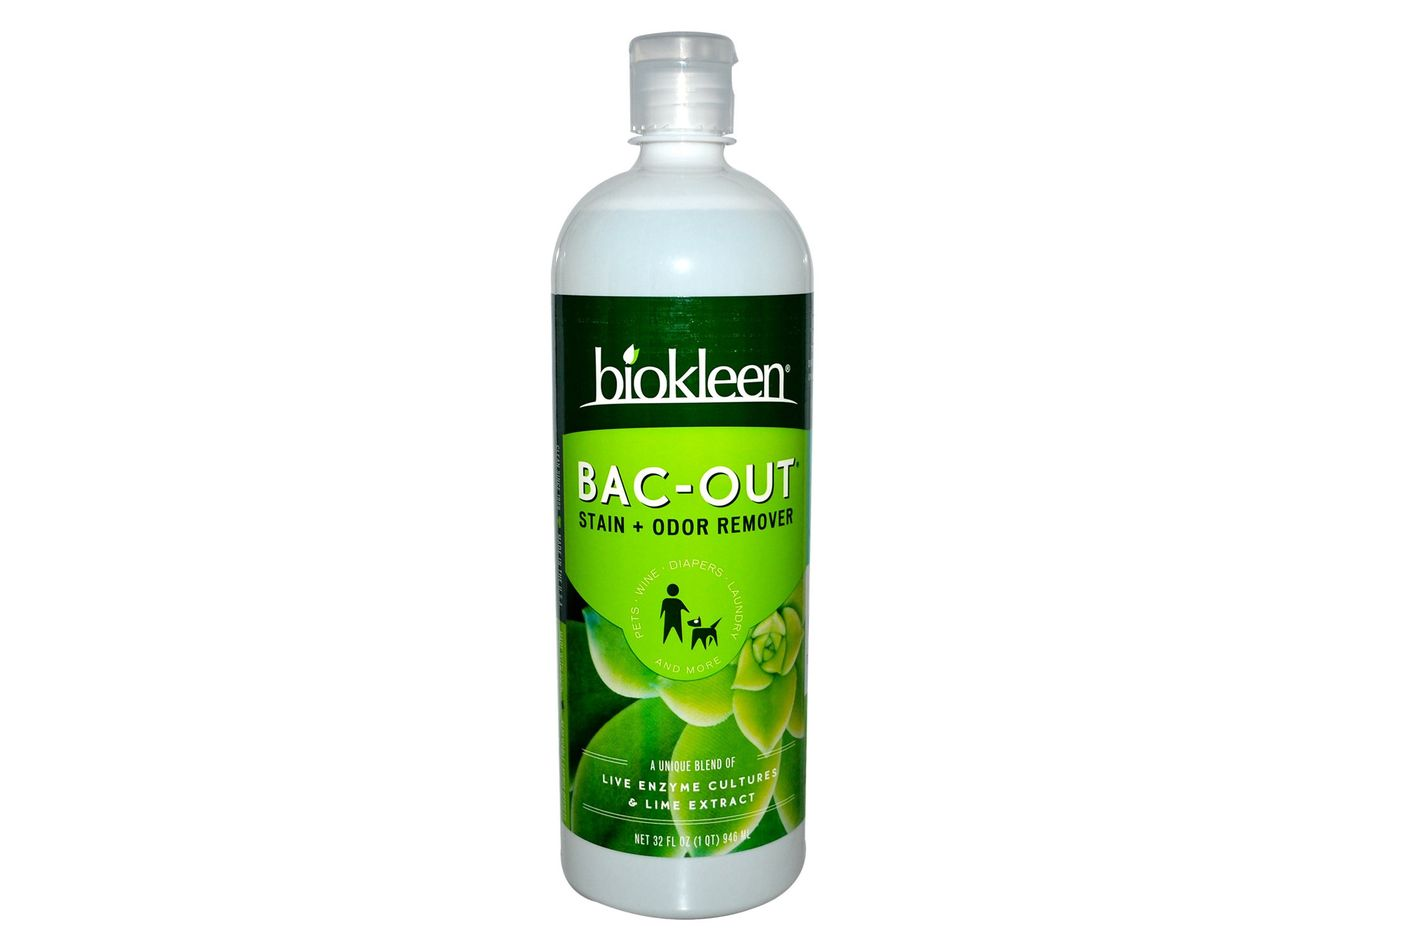 Biokleen Bac-Out Stain & Odor Eliminator